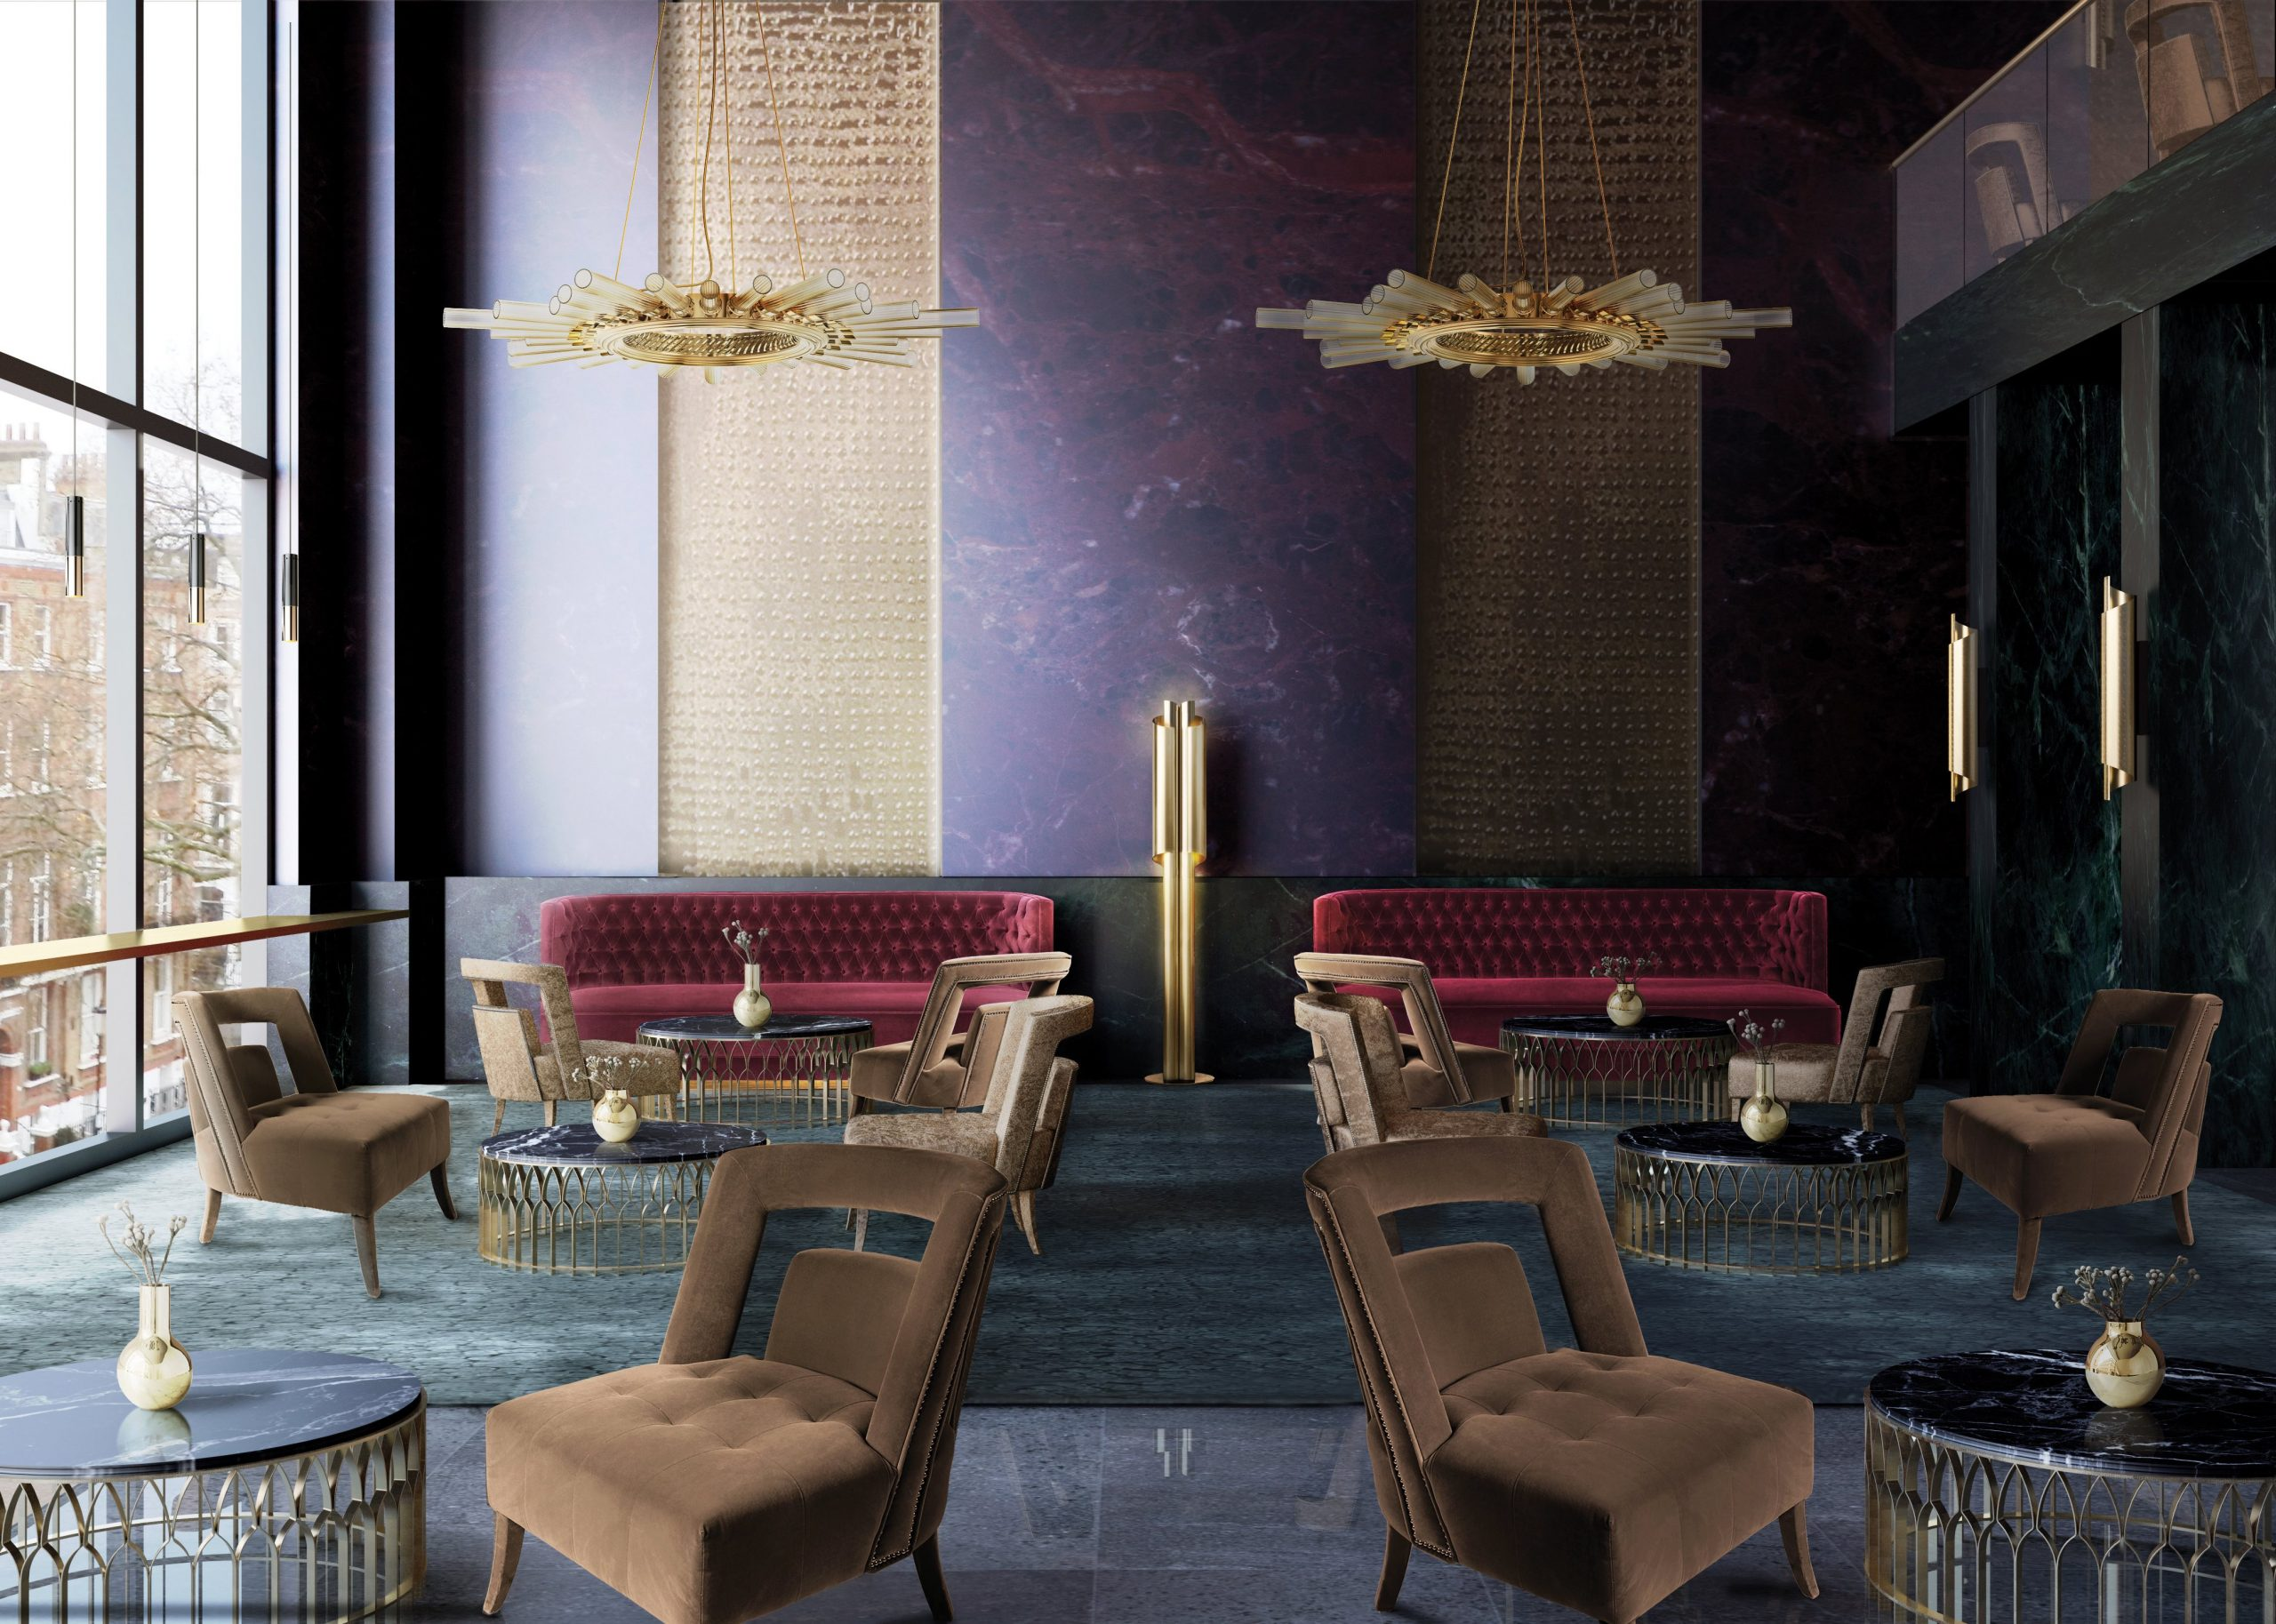 Hotel Lobbies and Waiting Spaces: A List Of 20 Modern Armchairs  modern armchairs Hotel Lobbies And Waiting Spaces: A List Of 20 Modern Armchairs Hotel Lobbies and Waiting Spaces A List Of 20 Modern Armchairs 5 scaled